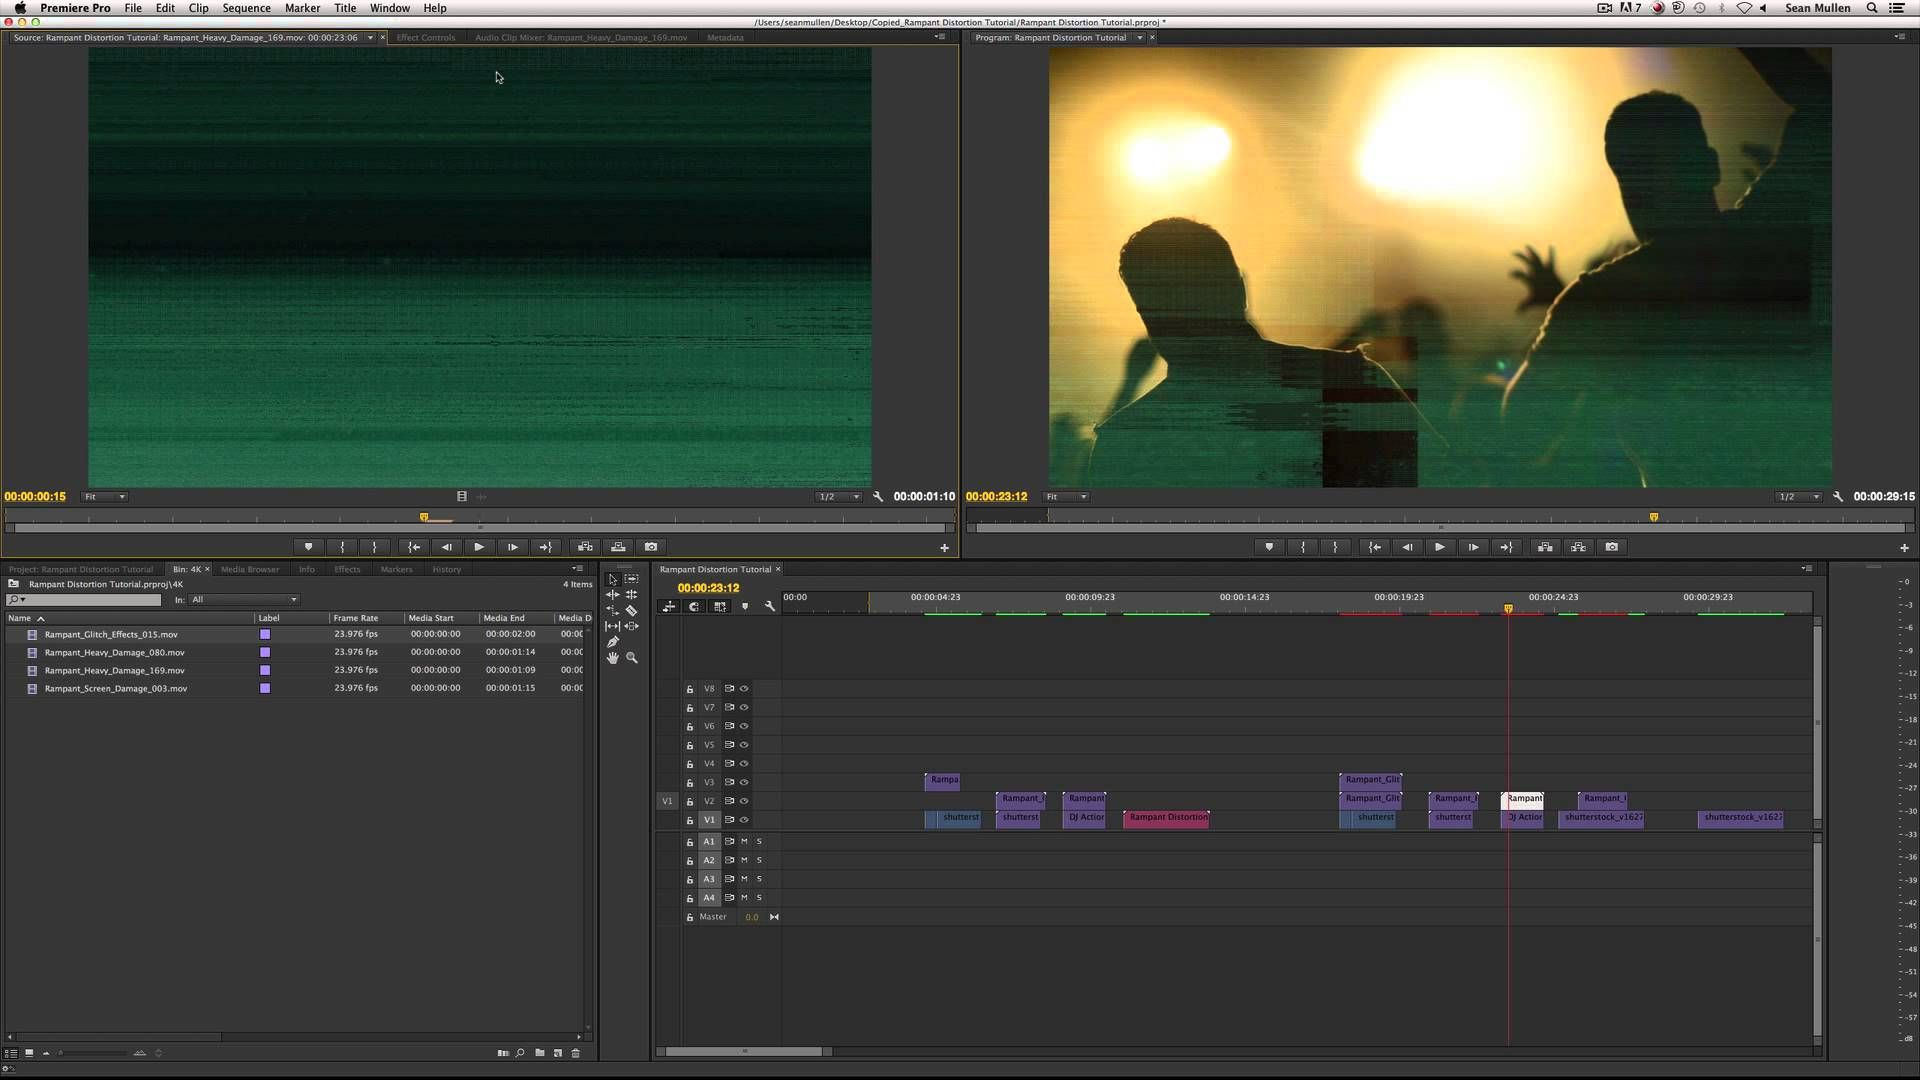 Use Glitch And Distortion Effects To Stylize Your Edit In Adobe Premiere Pro  Use Glitch And